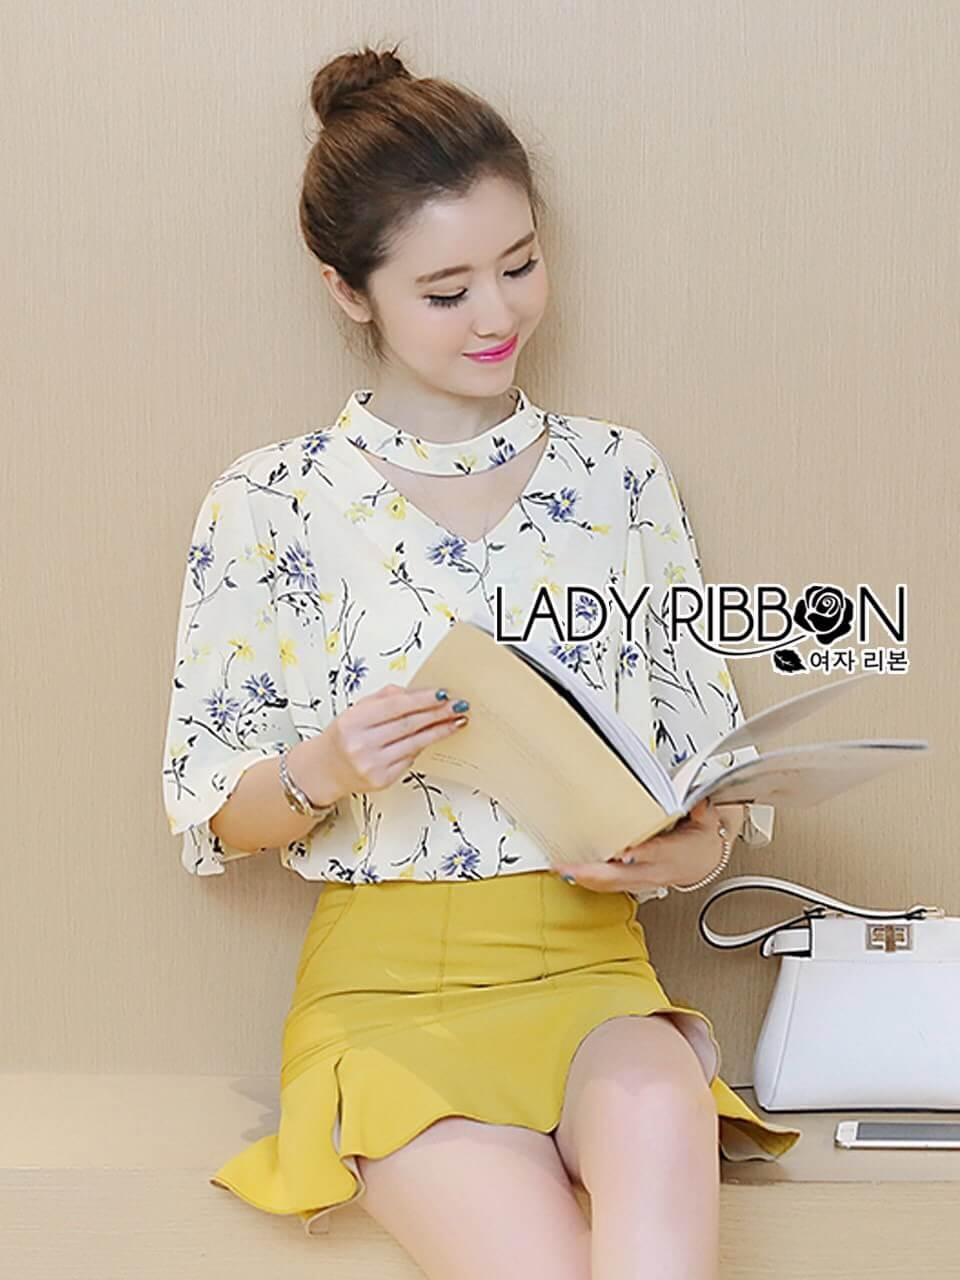 &#x1F380 Lady Ribbon's Made &#x1F380 Lady Emily Floral Printed Cut-Out Top and Mustard Peplum Skirt Set